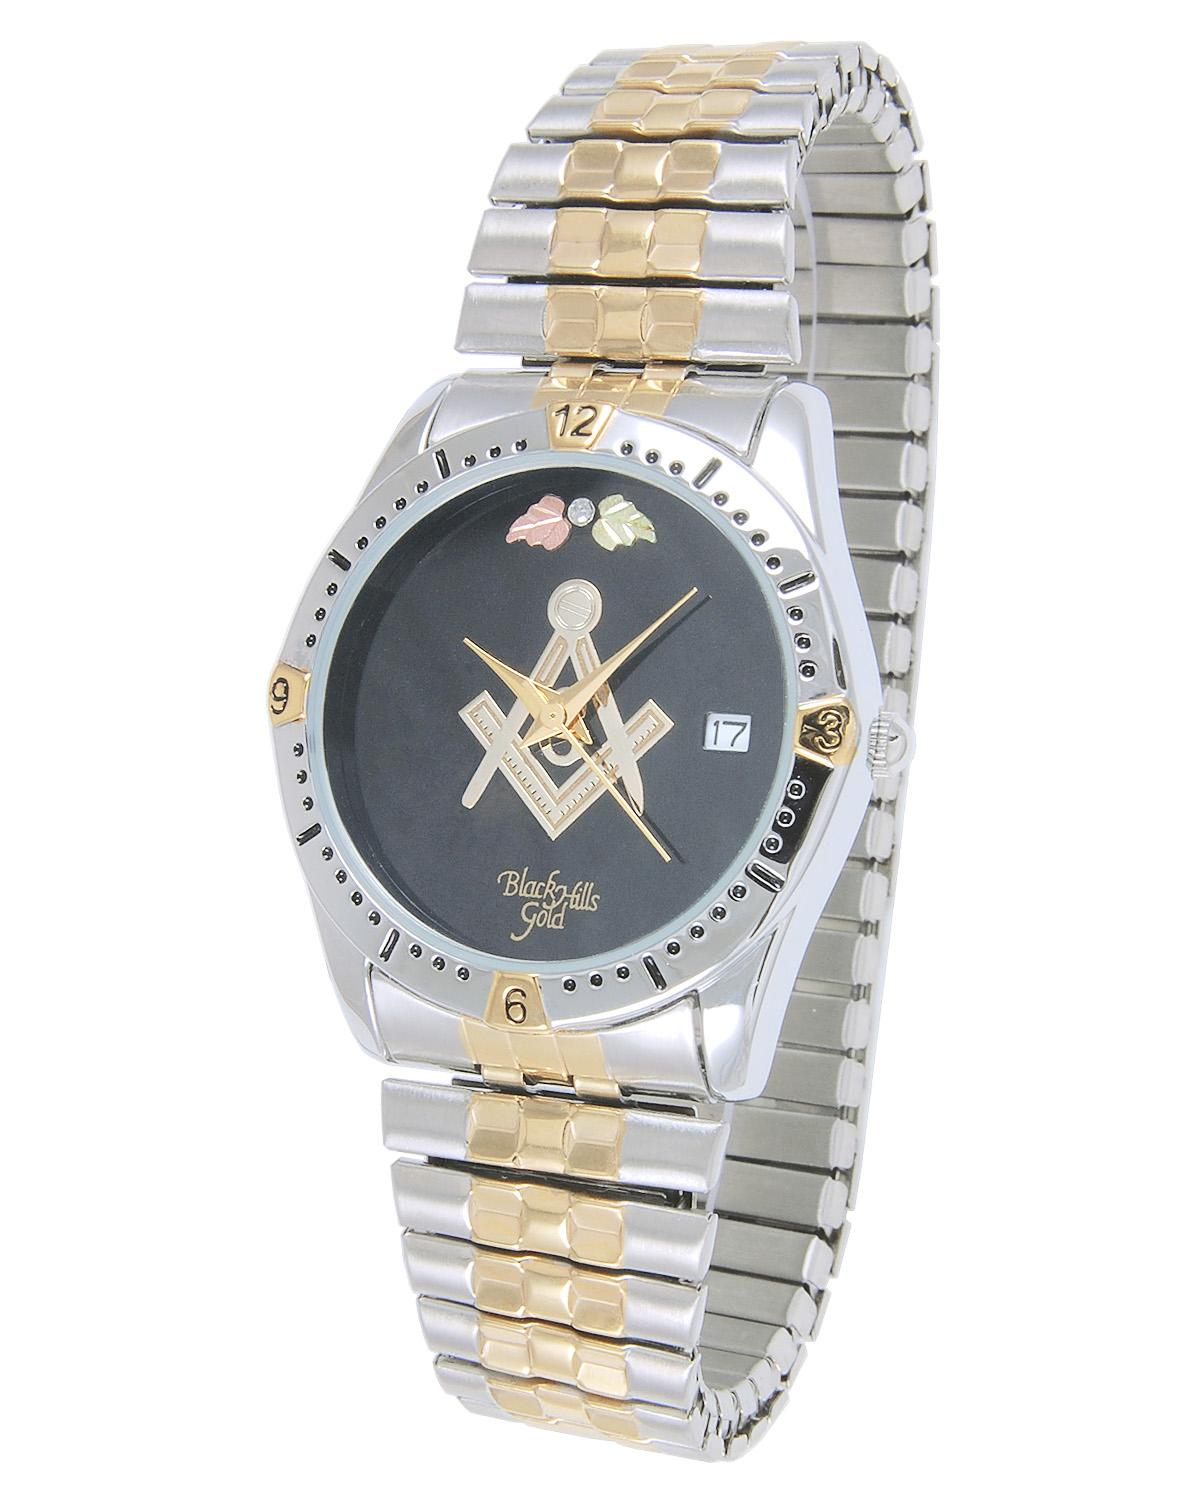 Black Hills Gold Mens Stainless Steel Masonic Watch